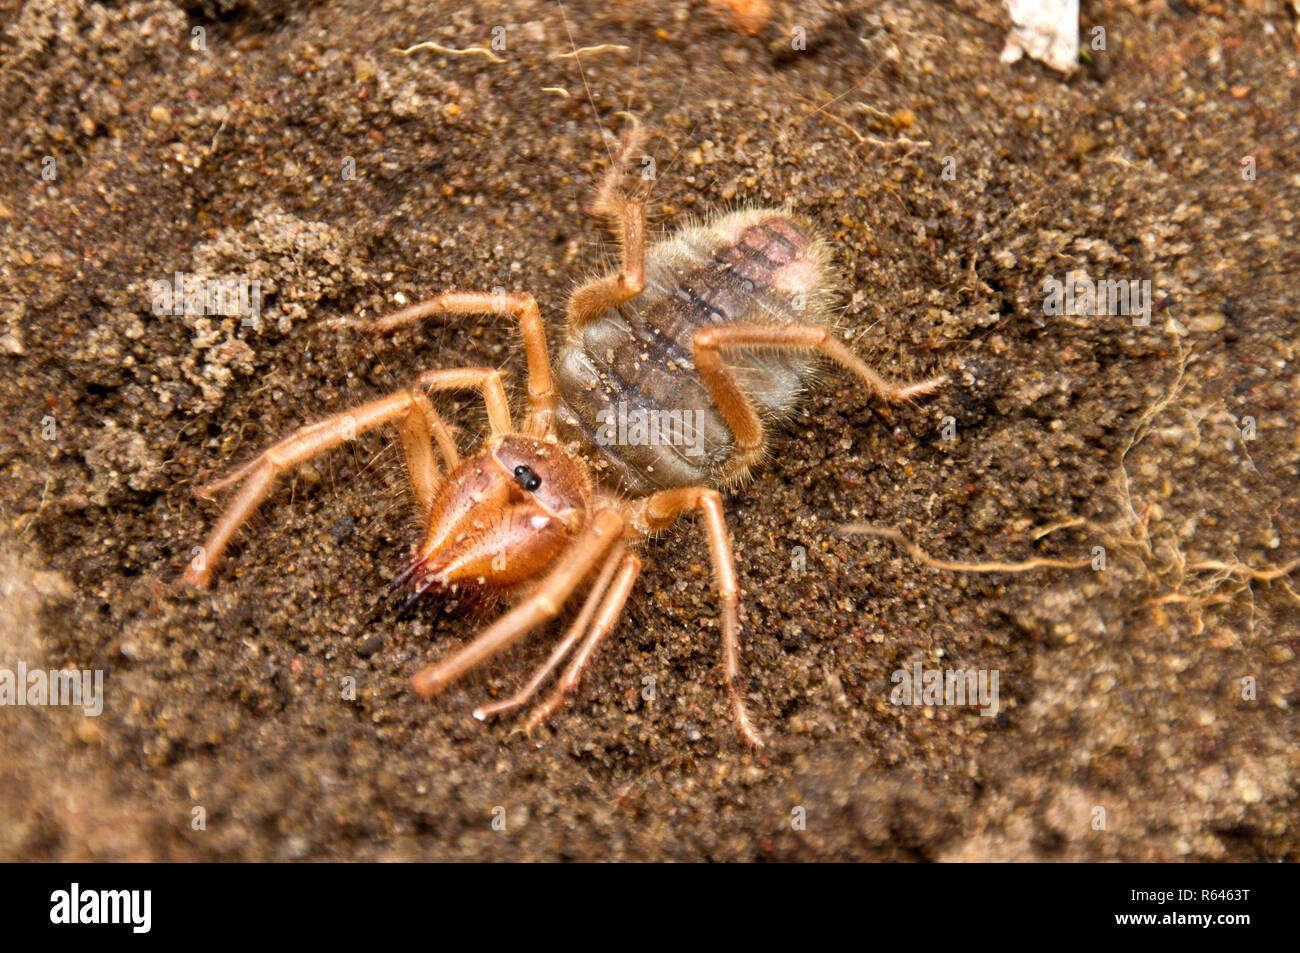 The Solifuge, or Roman Spider is an active predator at night and though it resembles a spider it has neither venom nor silk - Stock Image